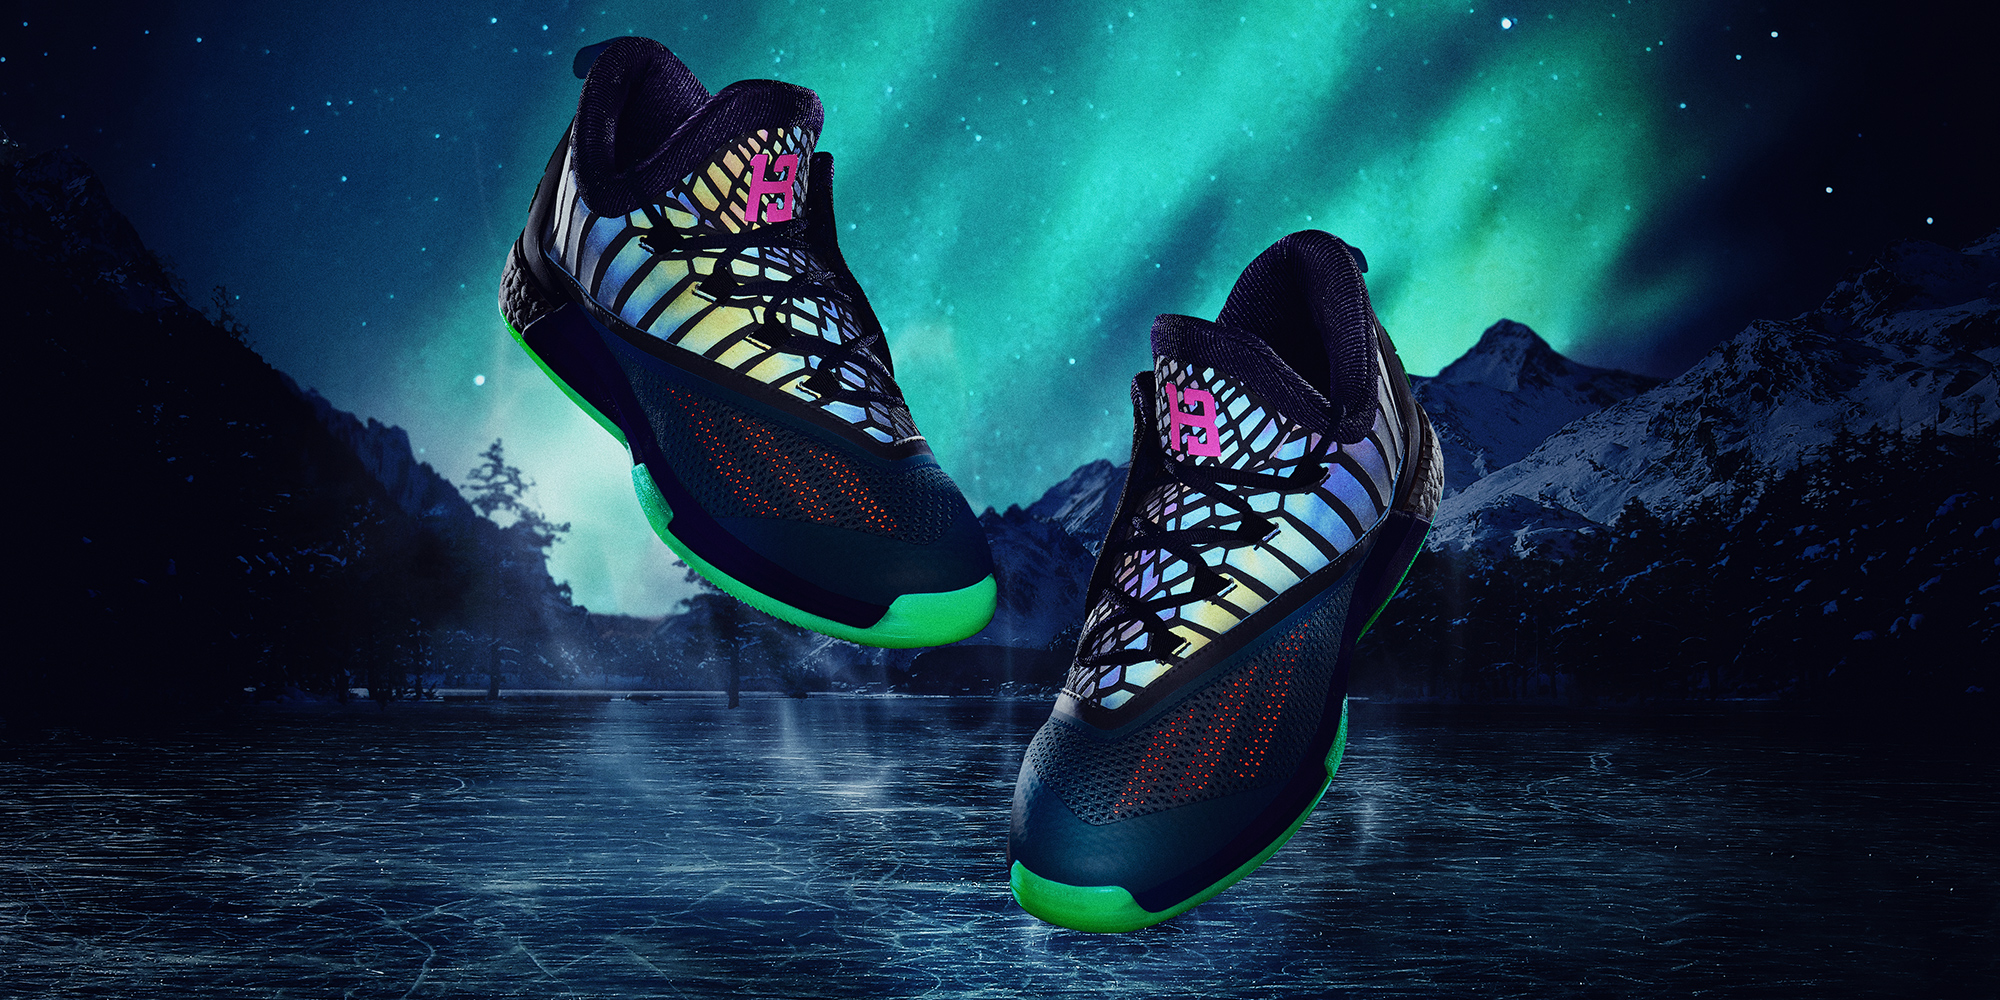 adidas Unveils James Harden Crazylight Boost 2.5 PE for the NBA All-Star Game